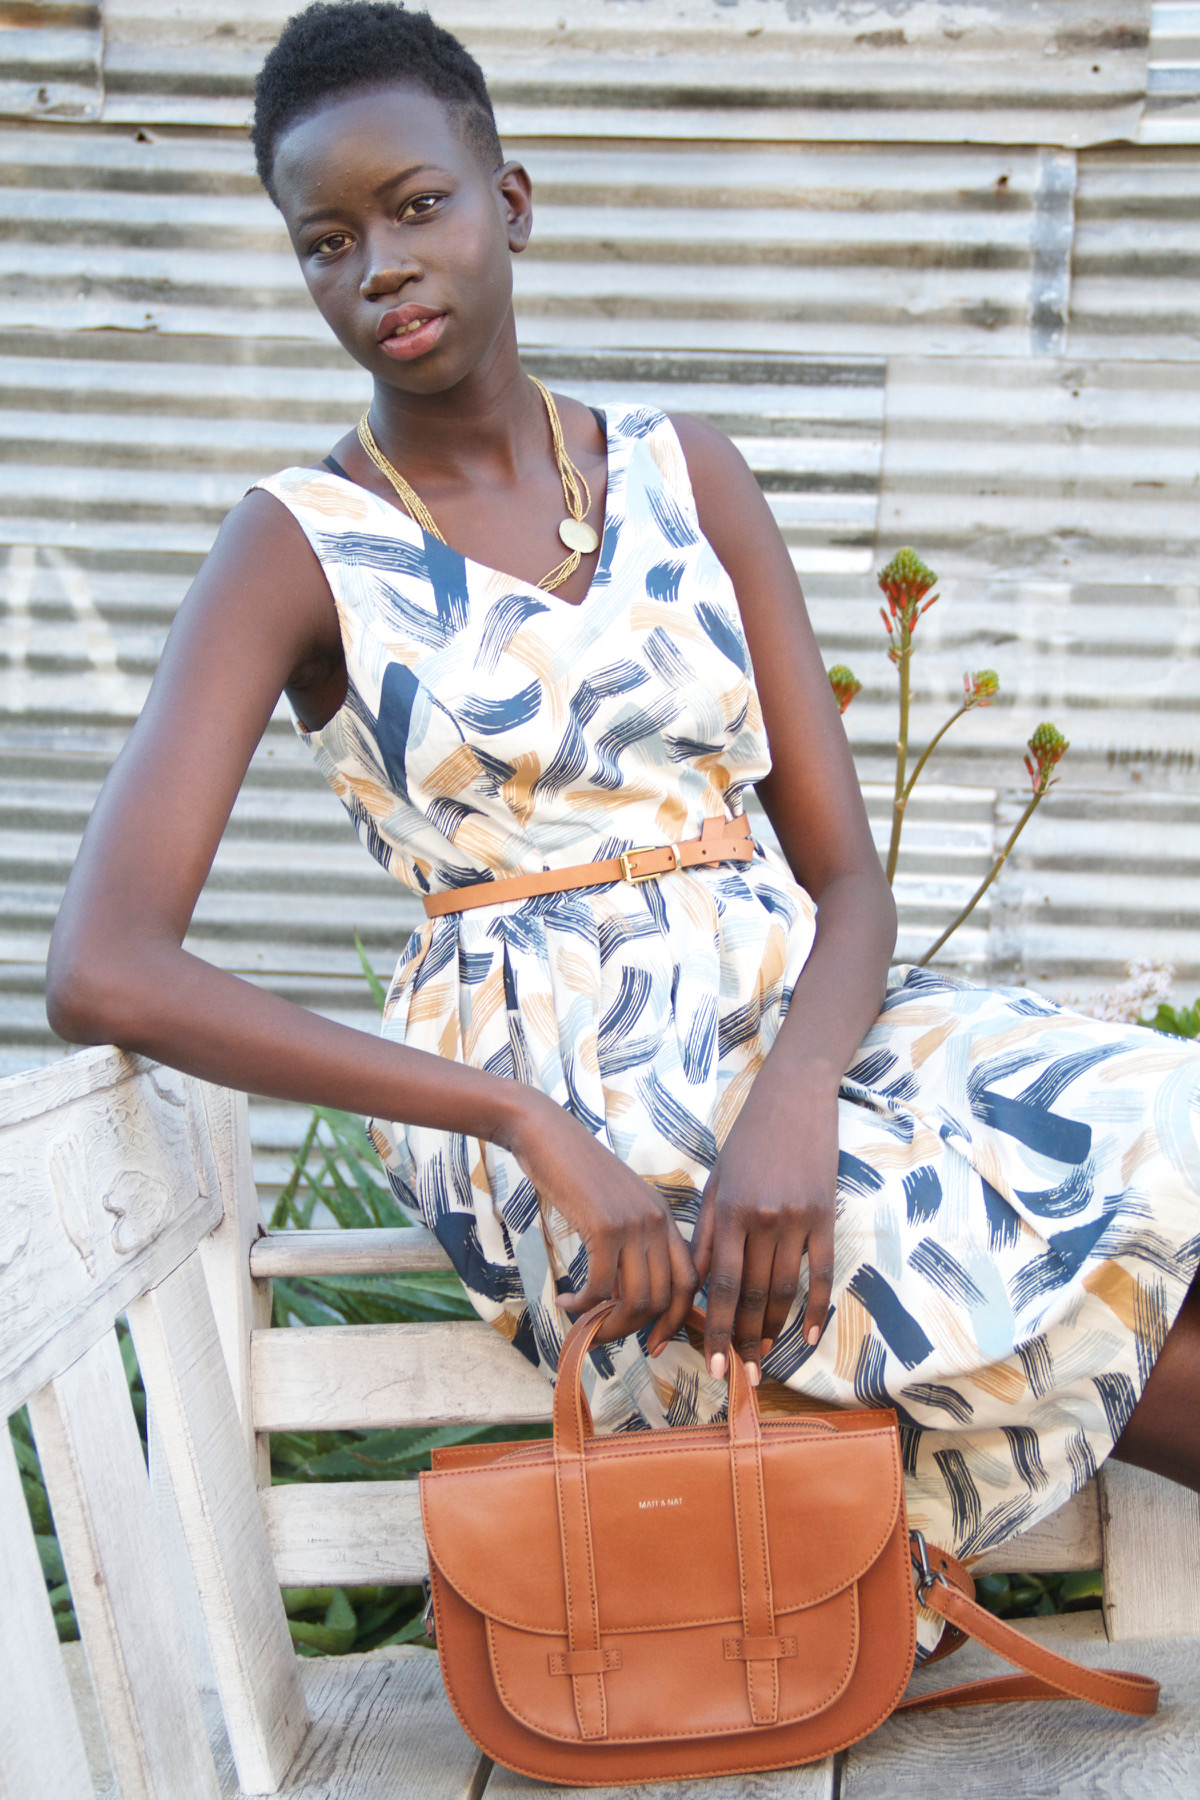 Bead and Reel, an ethical boutique and co-host of the Fair Trade Fashion Show